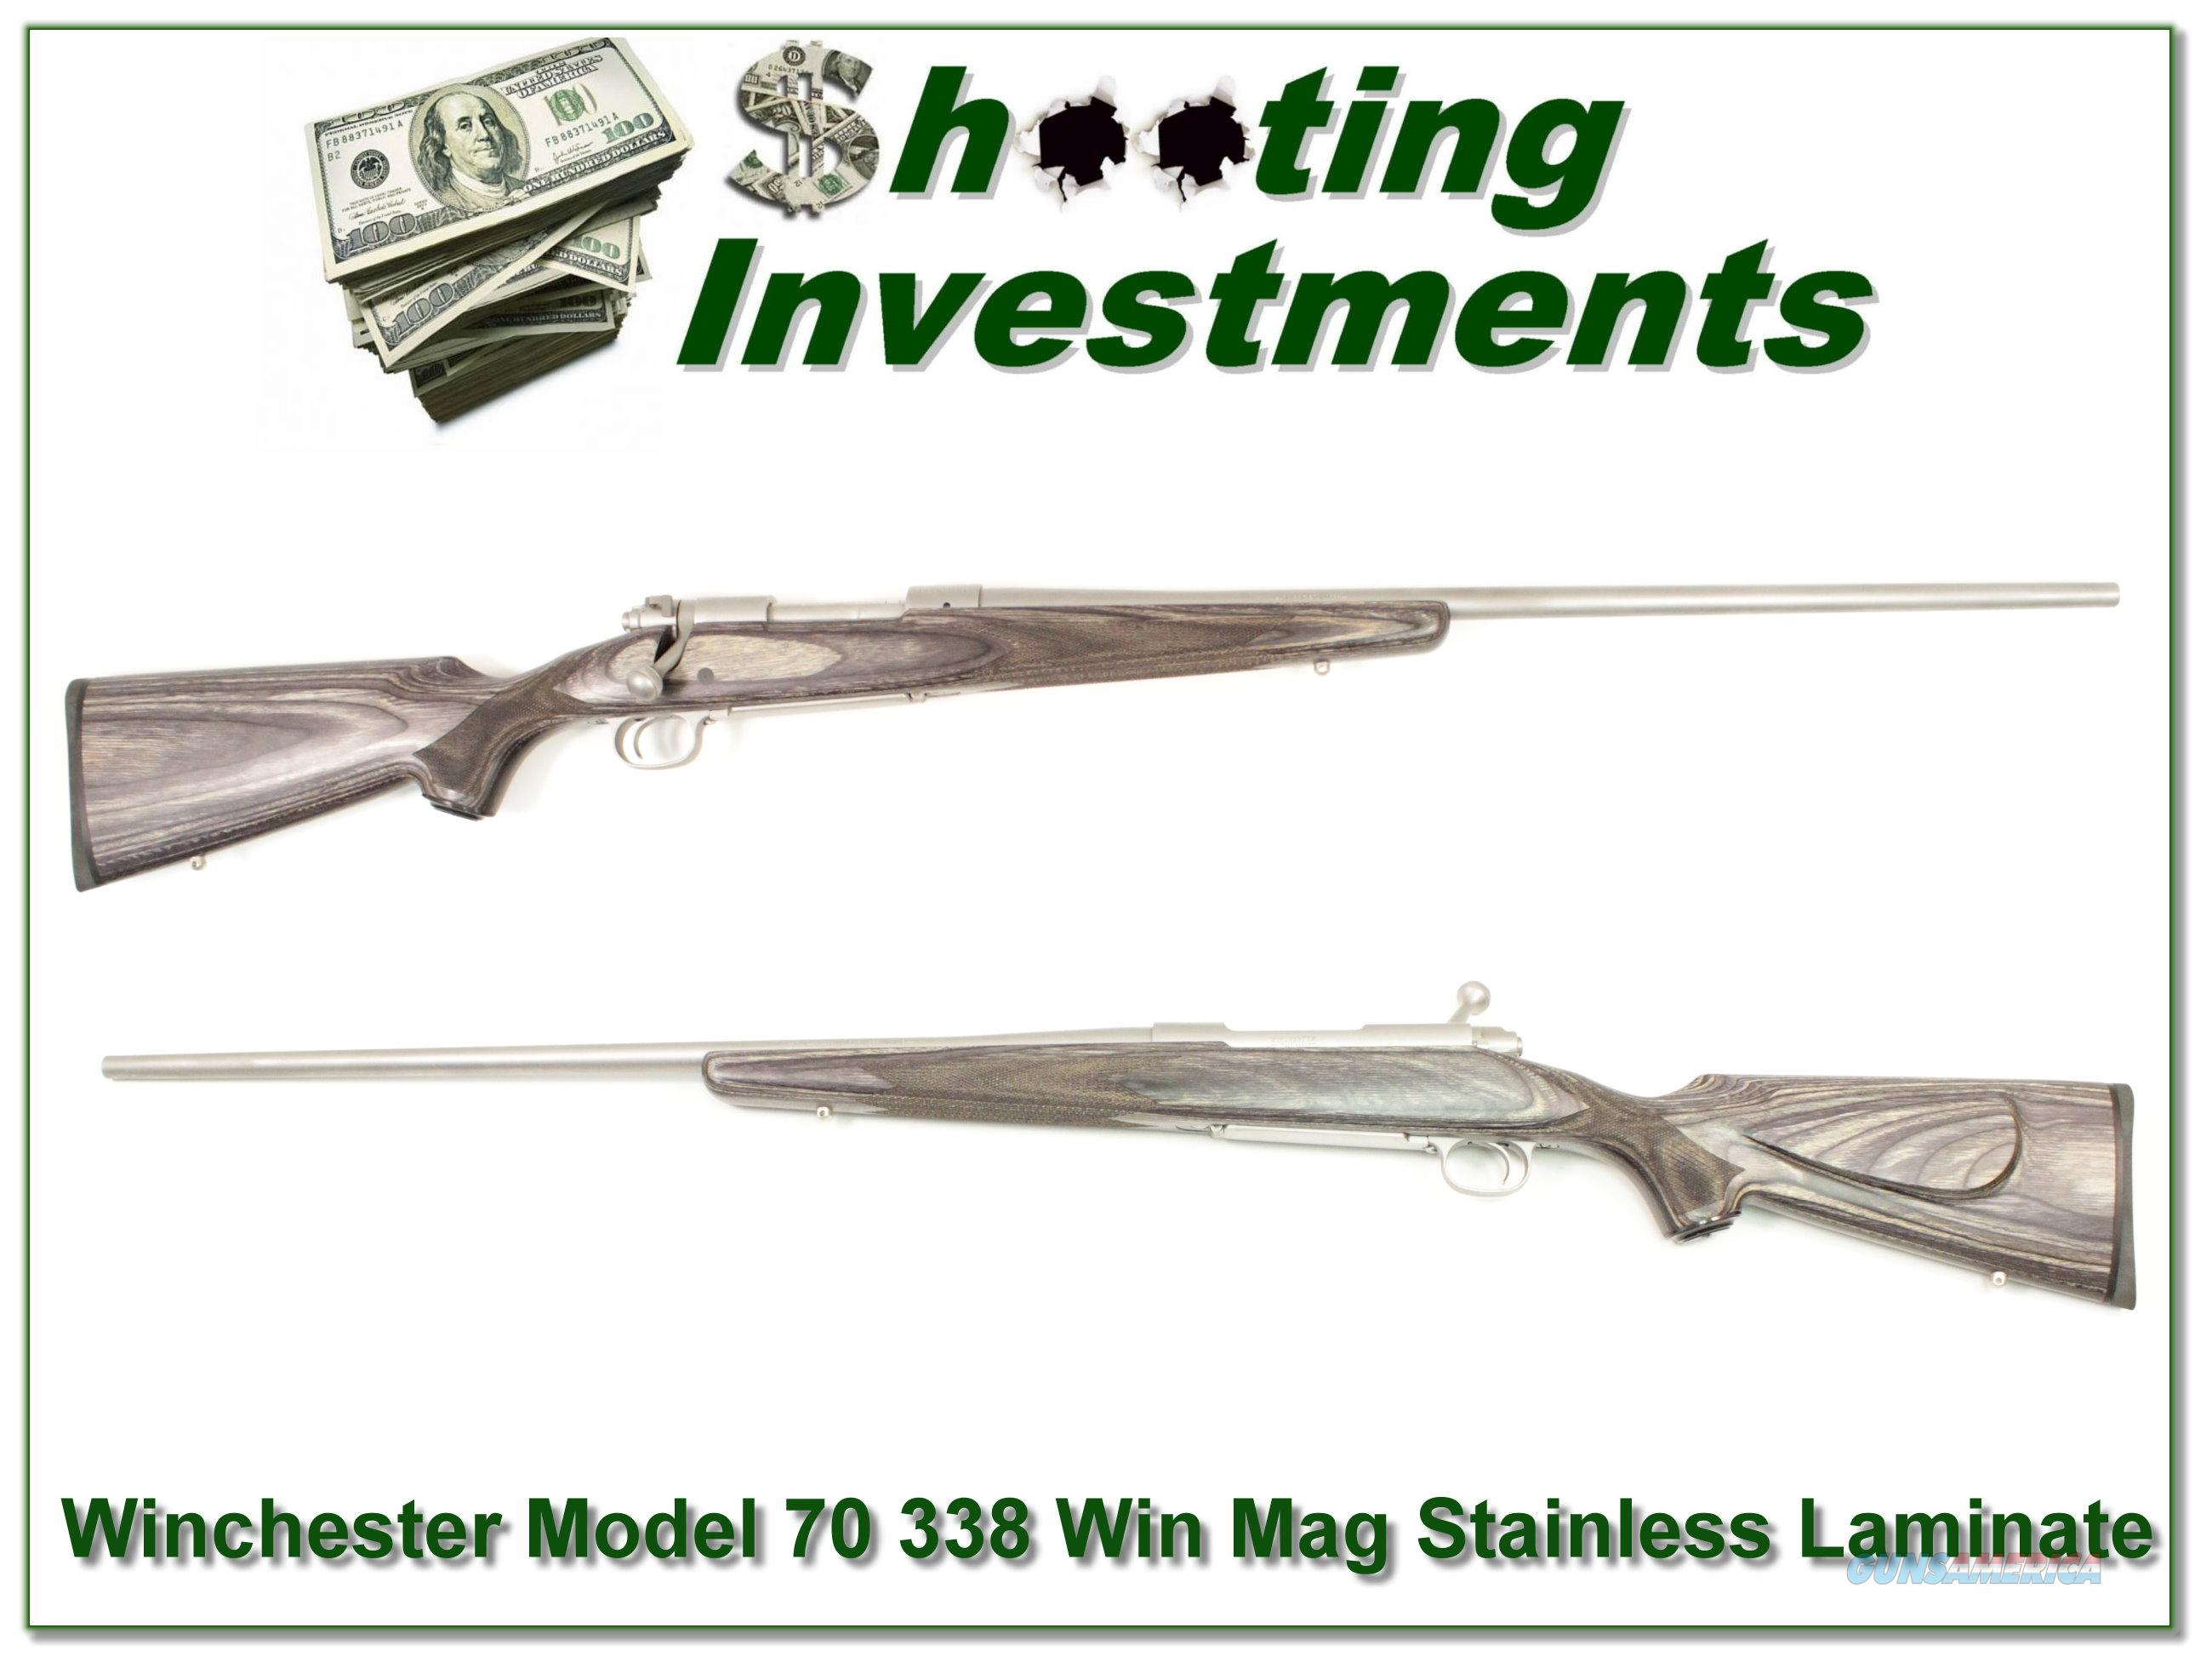 Winchester Model 70 Stainless Laminate 338 Win Mag  Guns > Rifles > Winchester Rifles - Modern Bolt/Auto/Single > Other Bolt Action